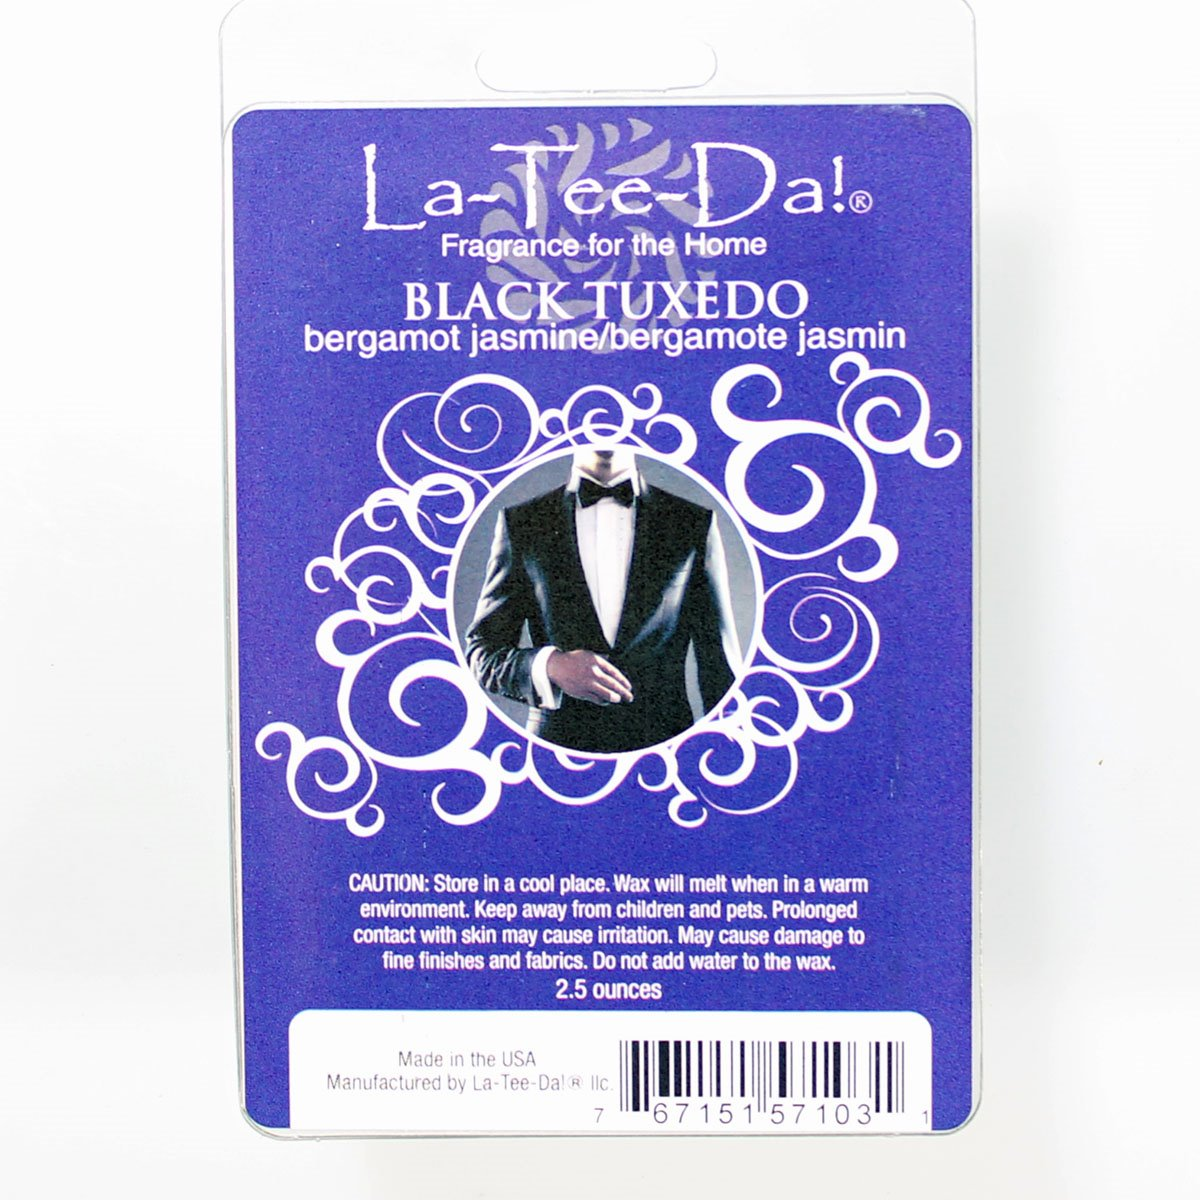 La-Tee-Da Wax Melts Black Tuxedo